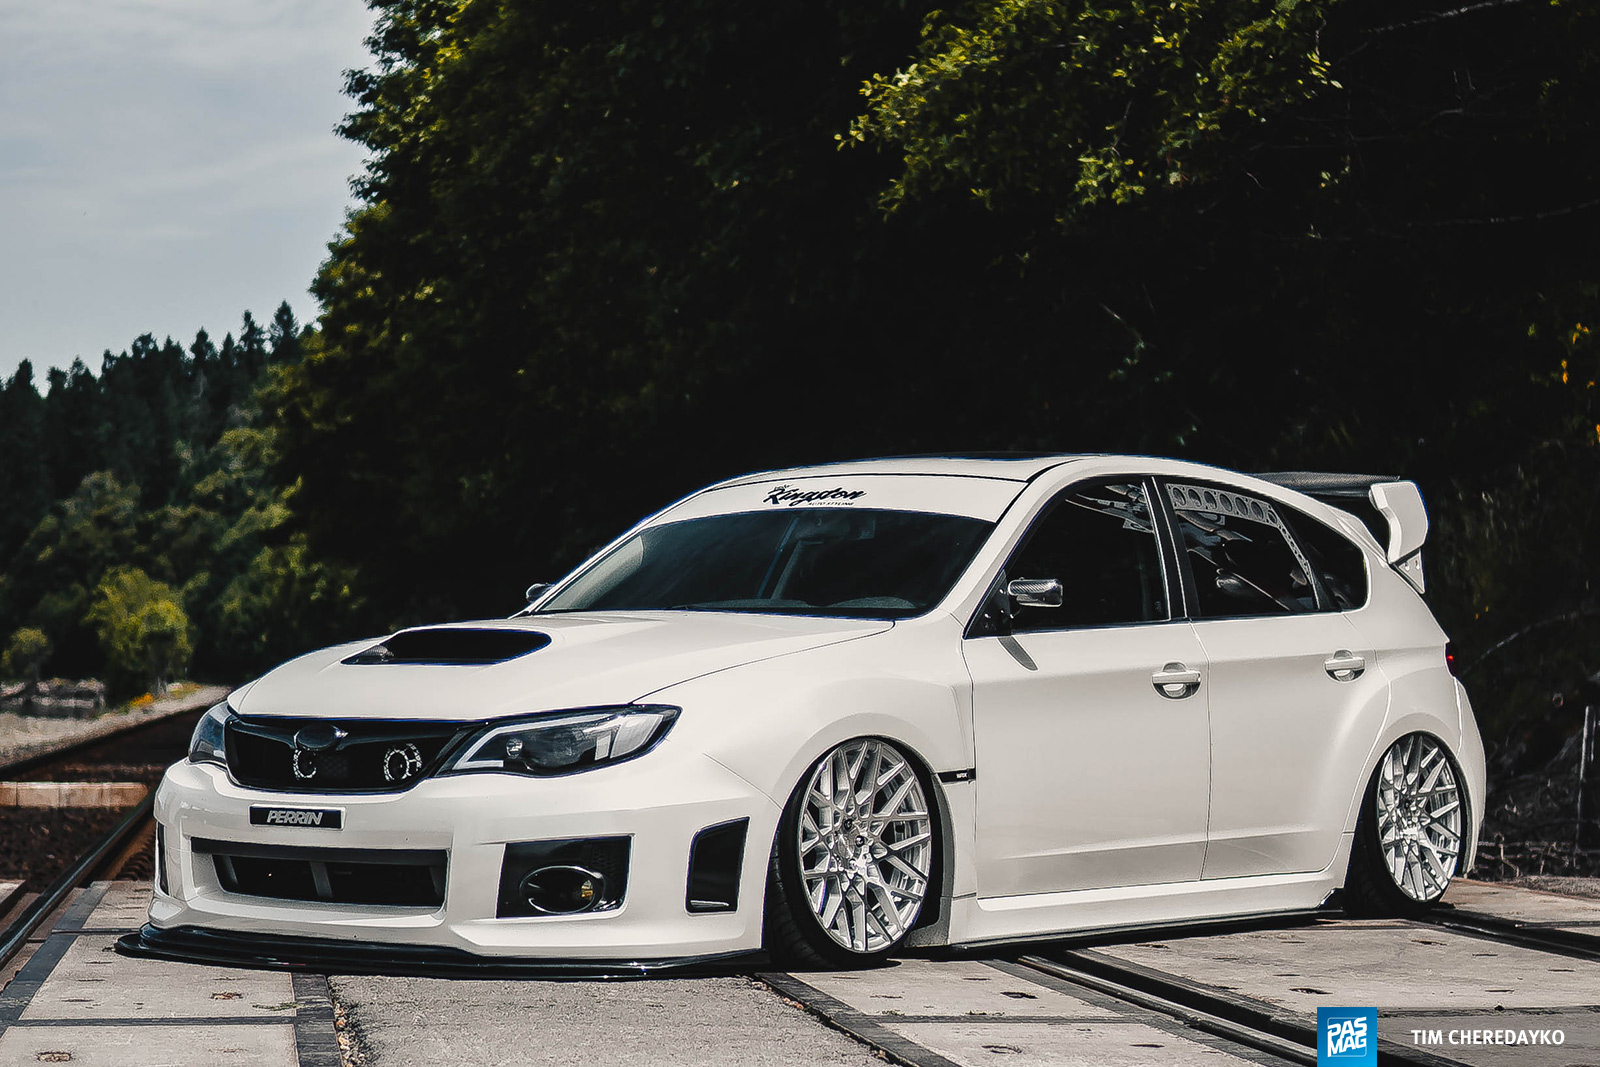 12 Mindy Hearring 2013 Subaru Impreza WRX pasmag tuner battlegrounds hot import nights